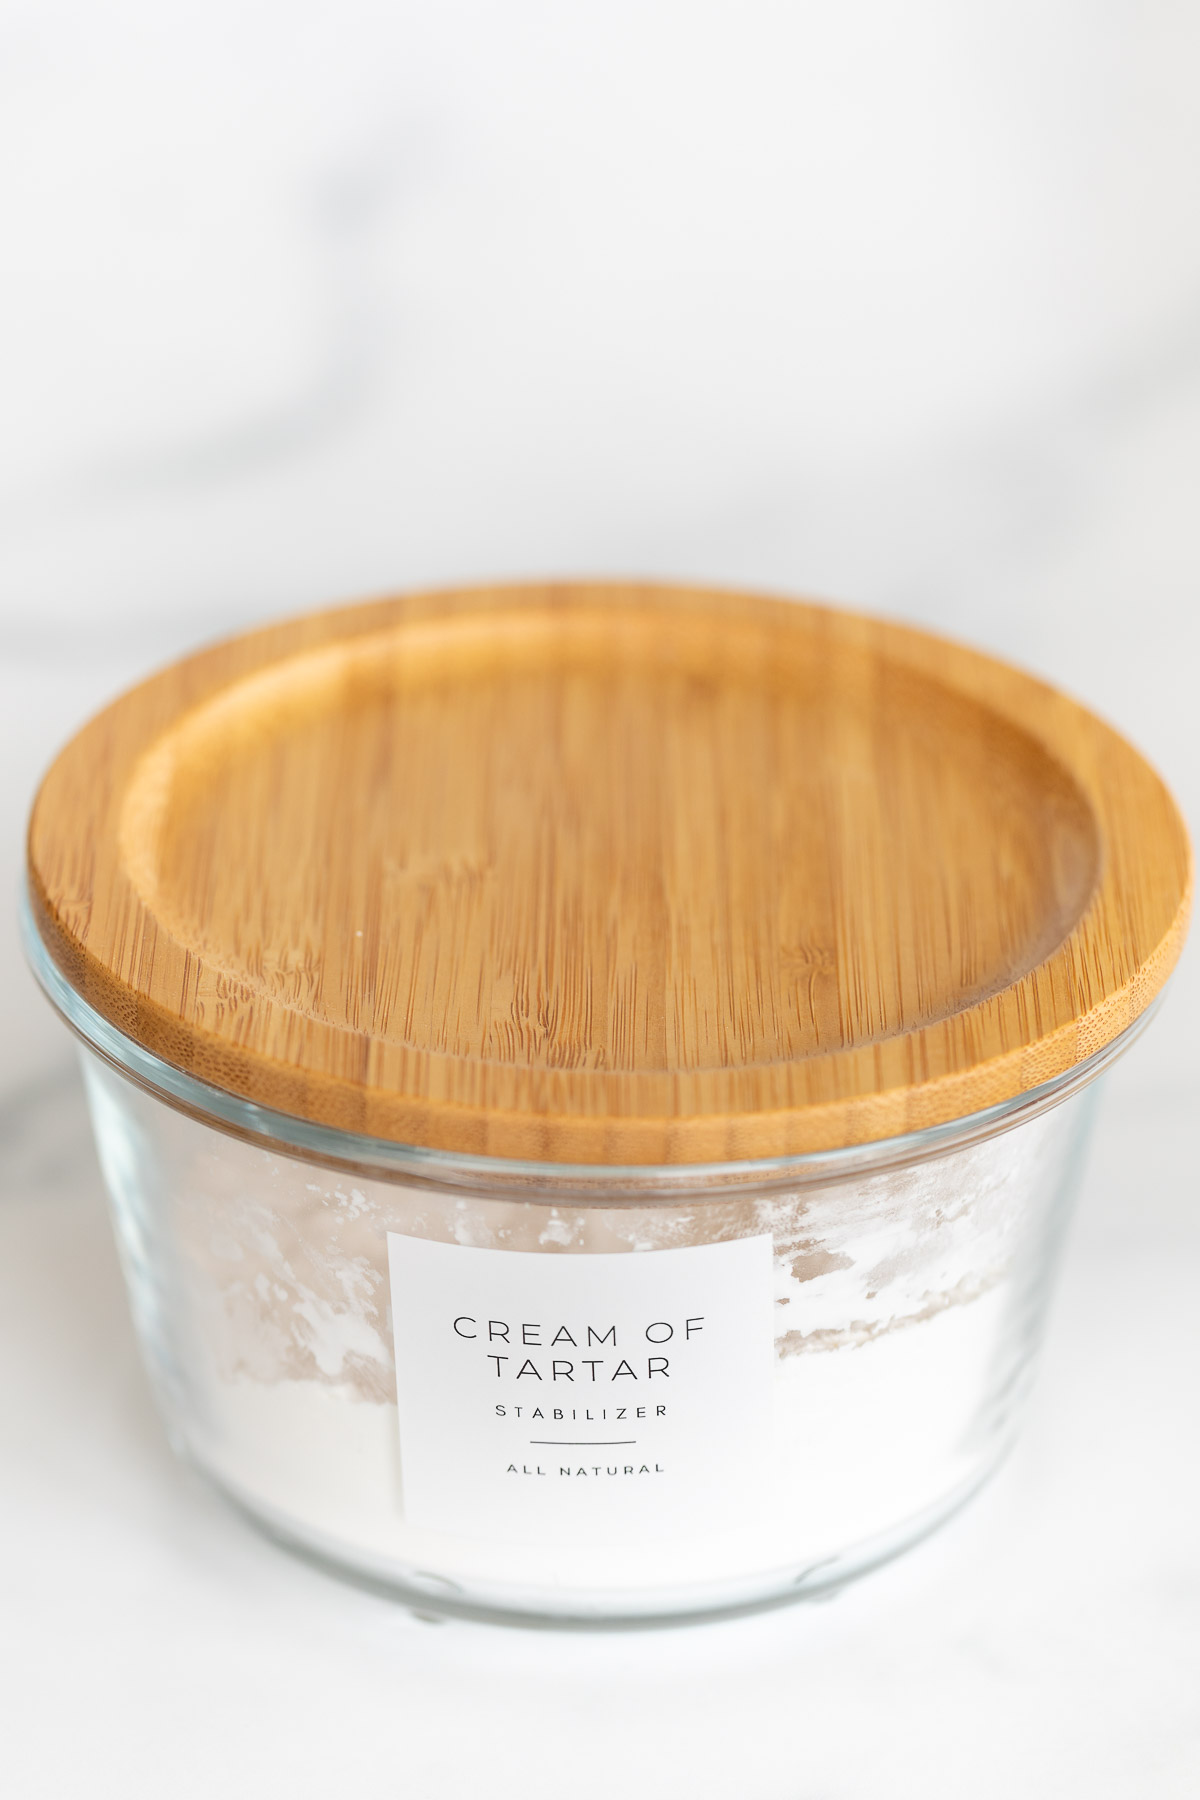 cream of tartar in glass container with wood lid and label